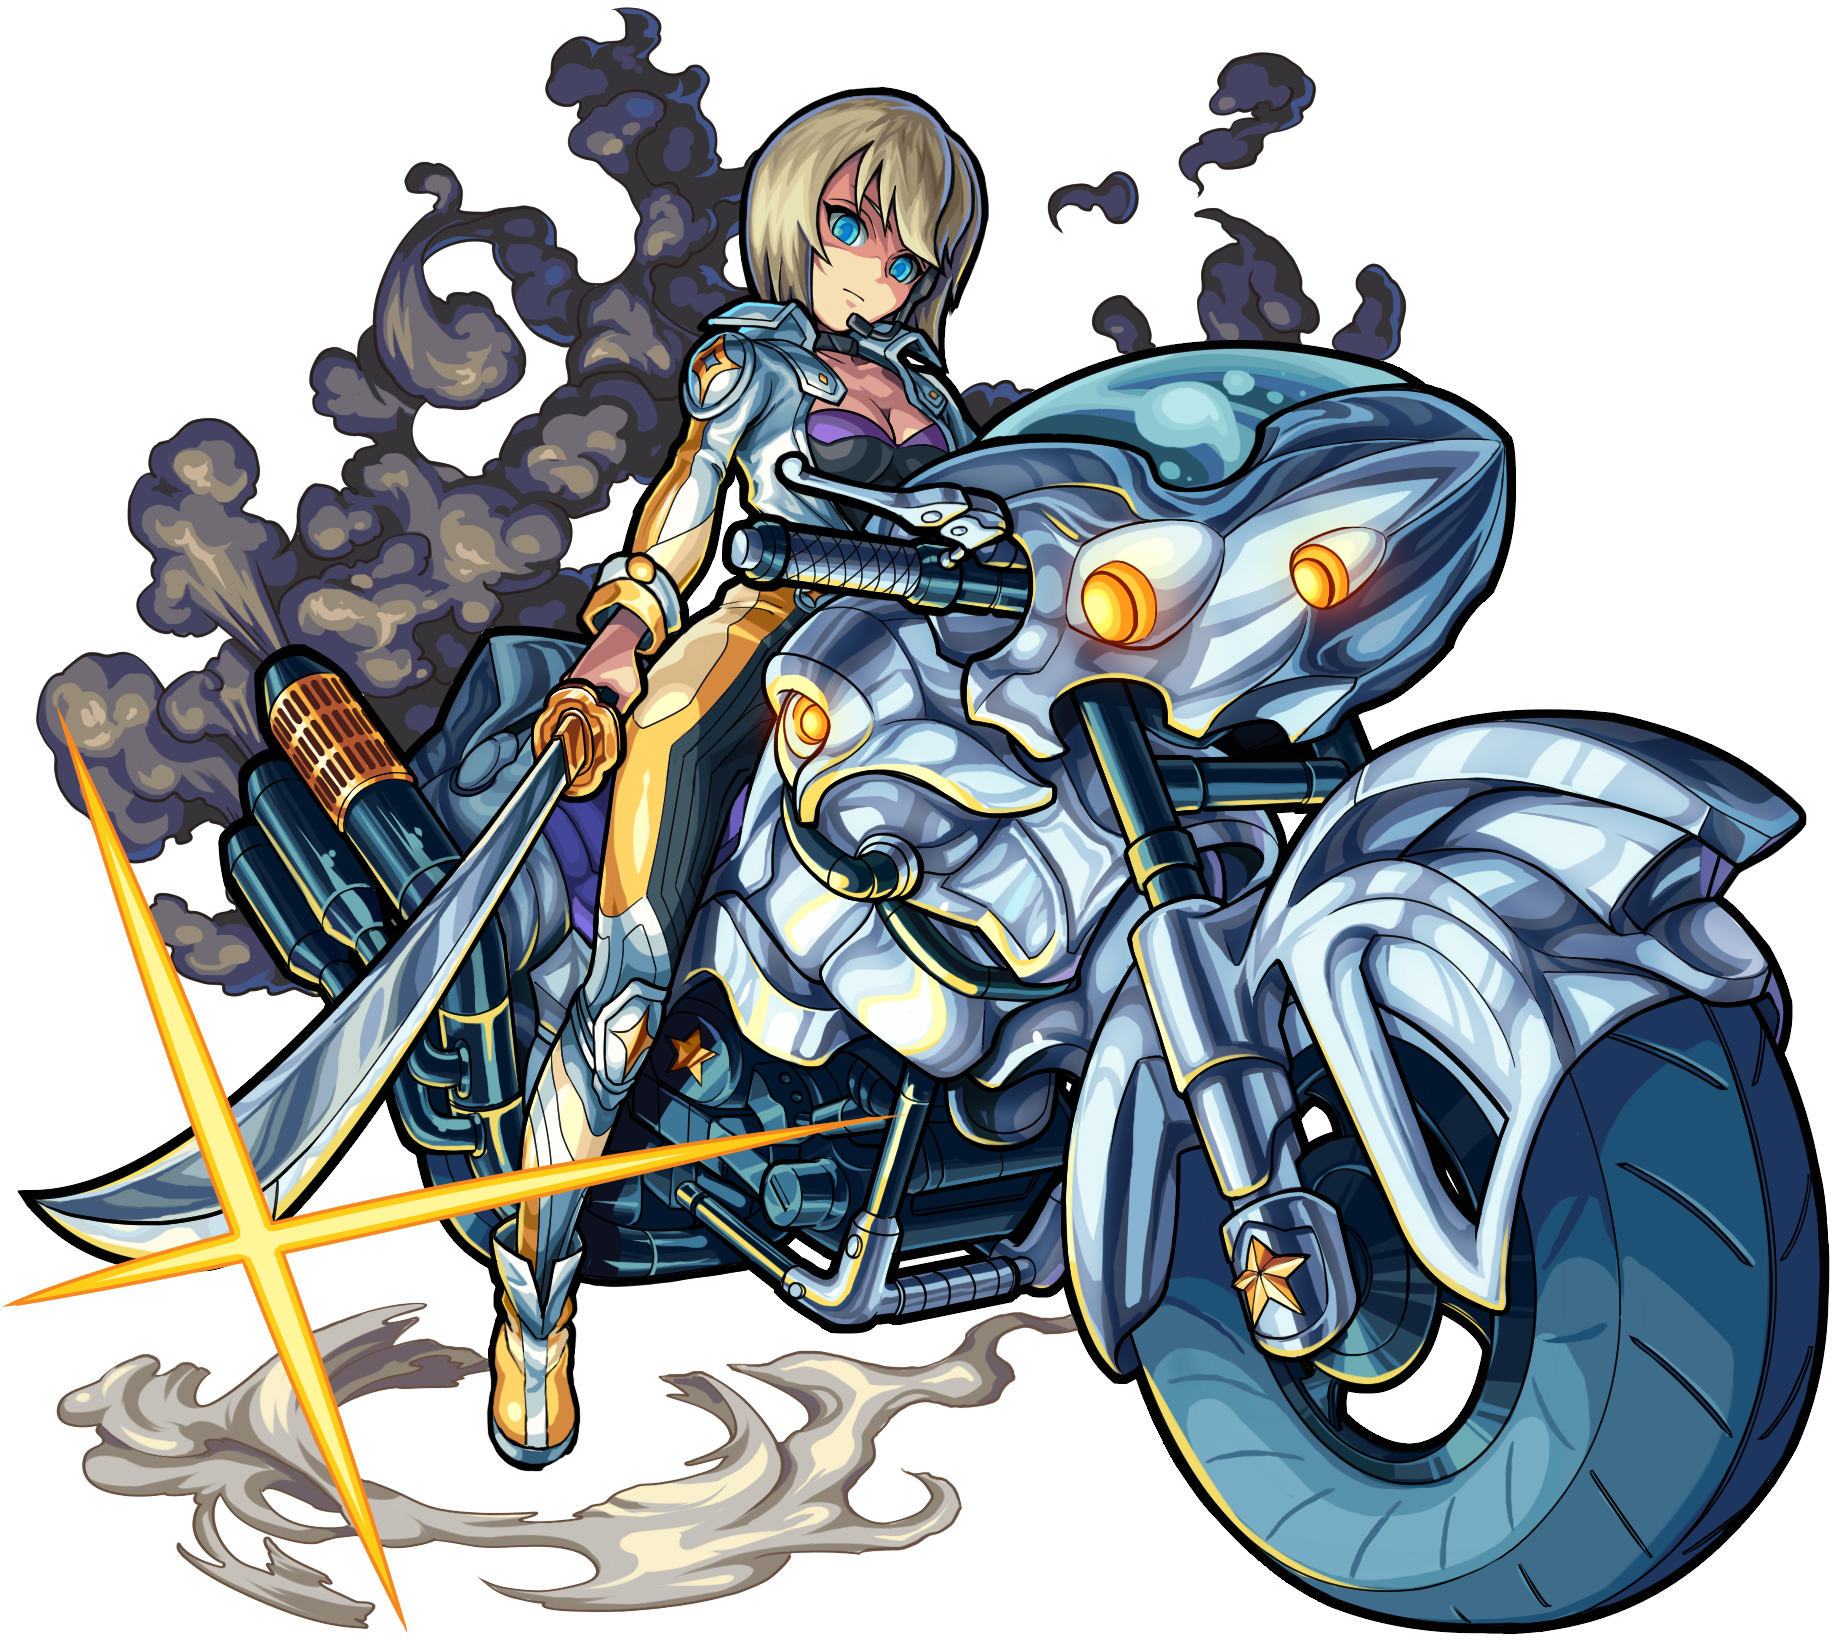 20150420_05.png (1840×1640) (With images) Monster strike